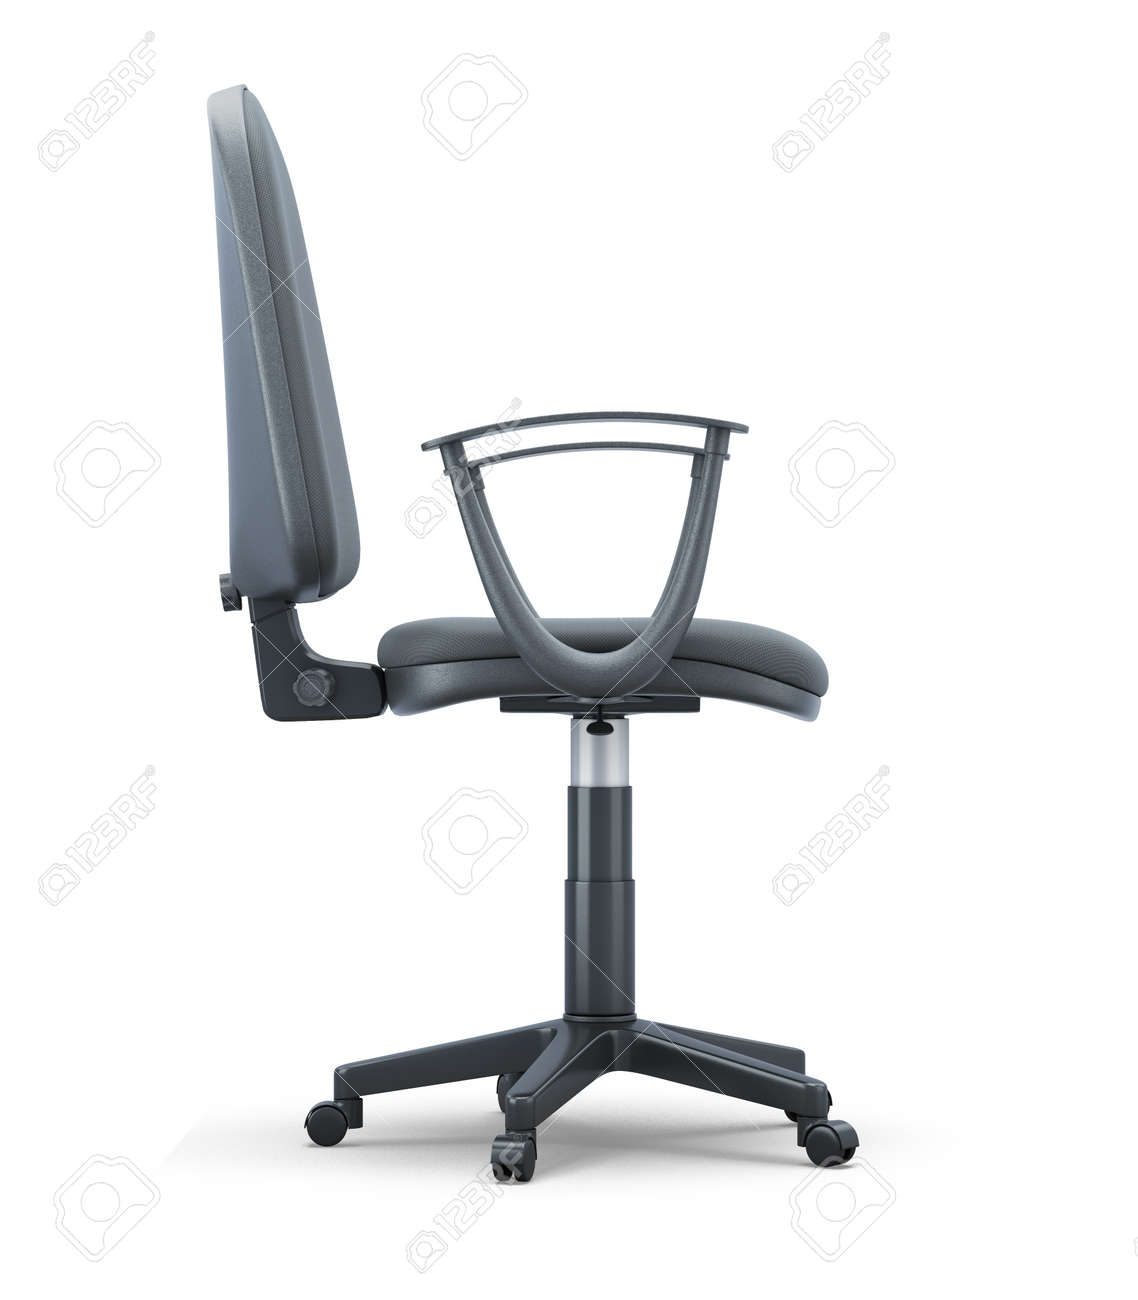 office chair side. Interesting Office Office Chair Side View Isolated On White Background 3d Render Image Stock  Photo  Throughout Chair Side S